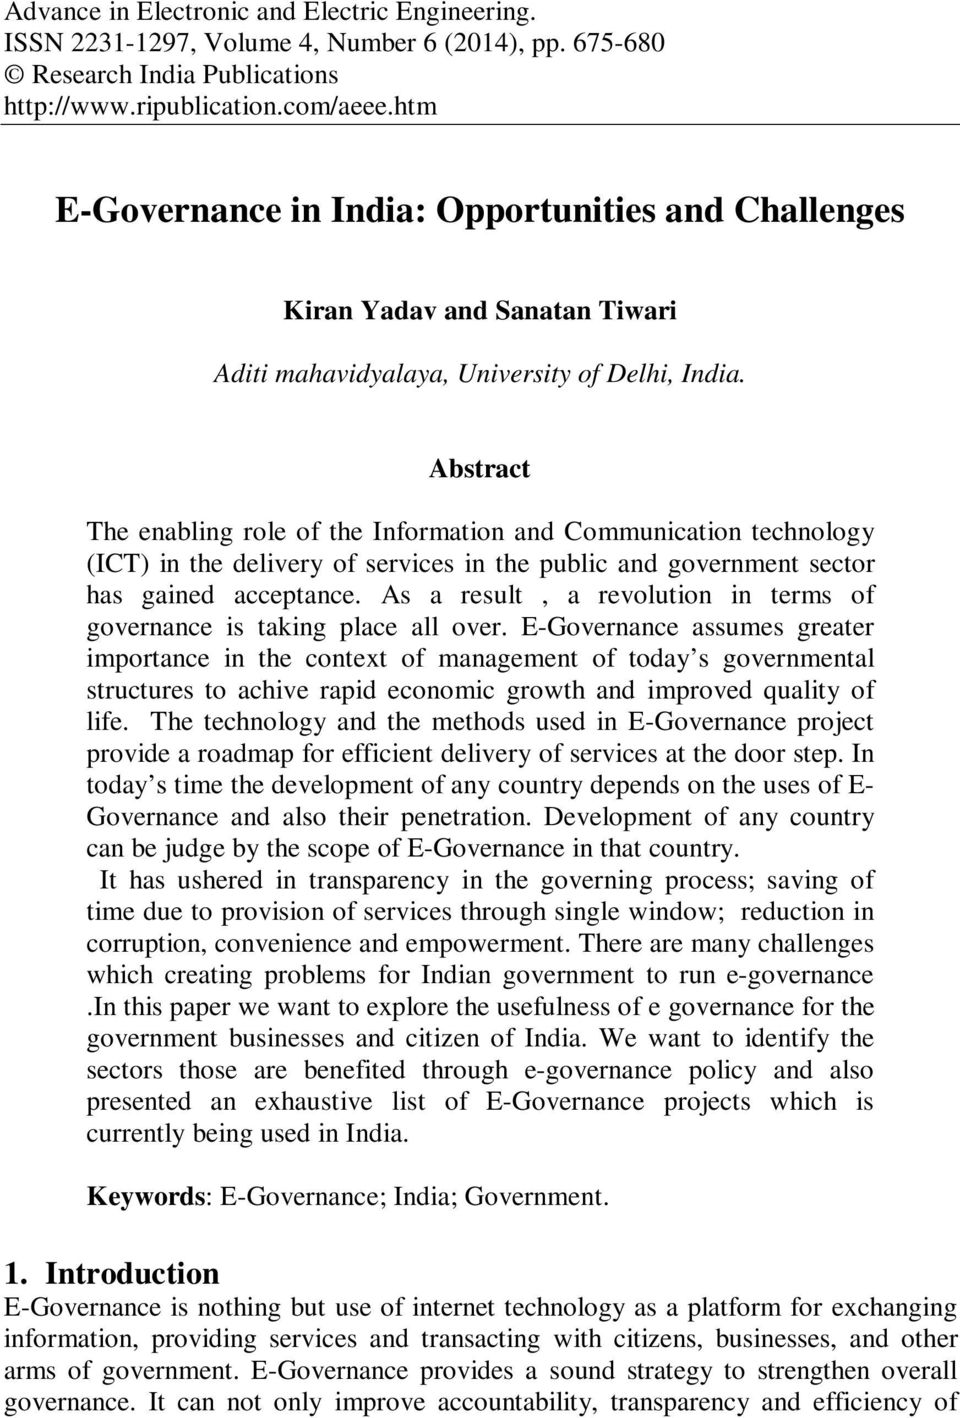 research papers on e-governance in india